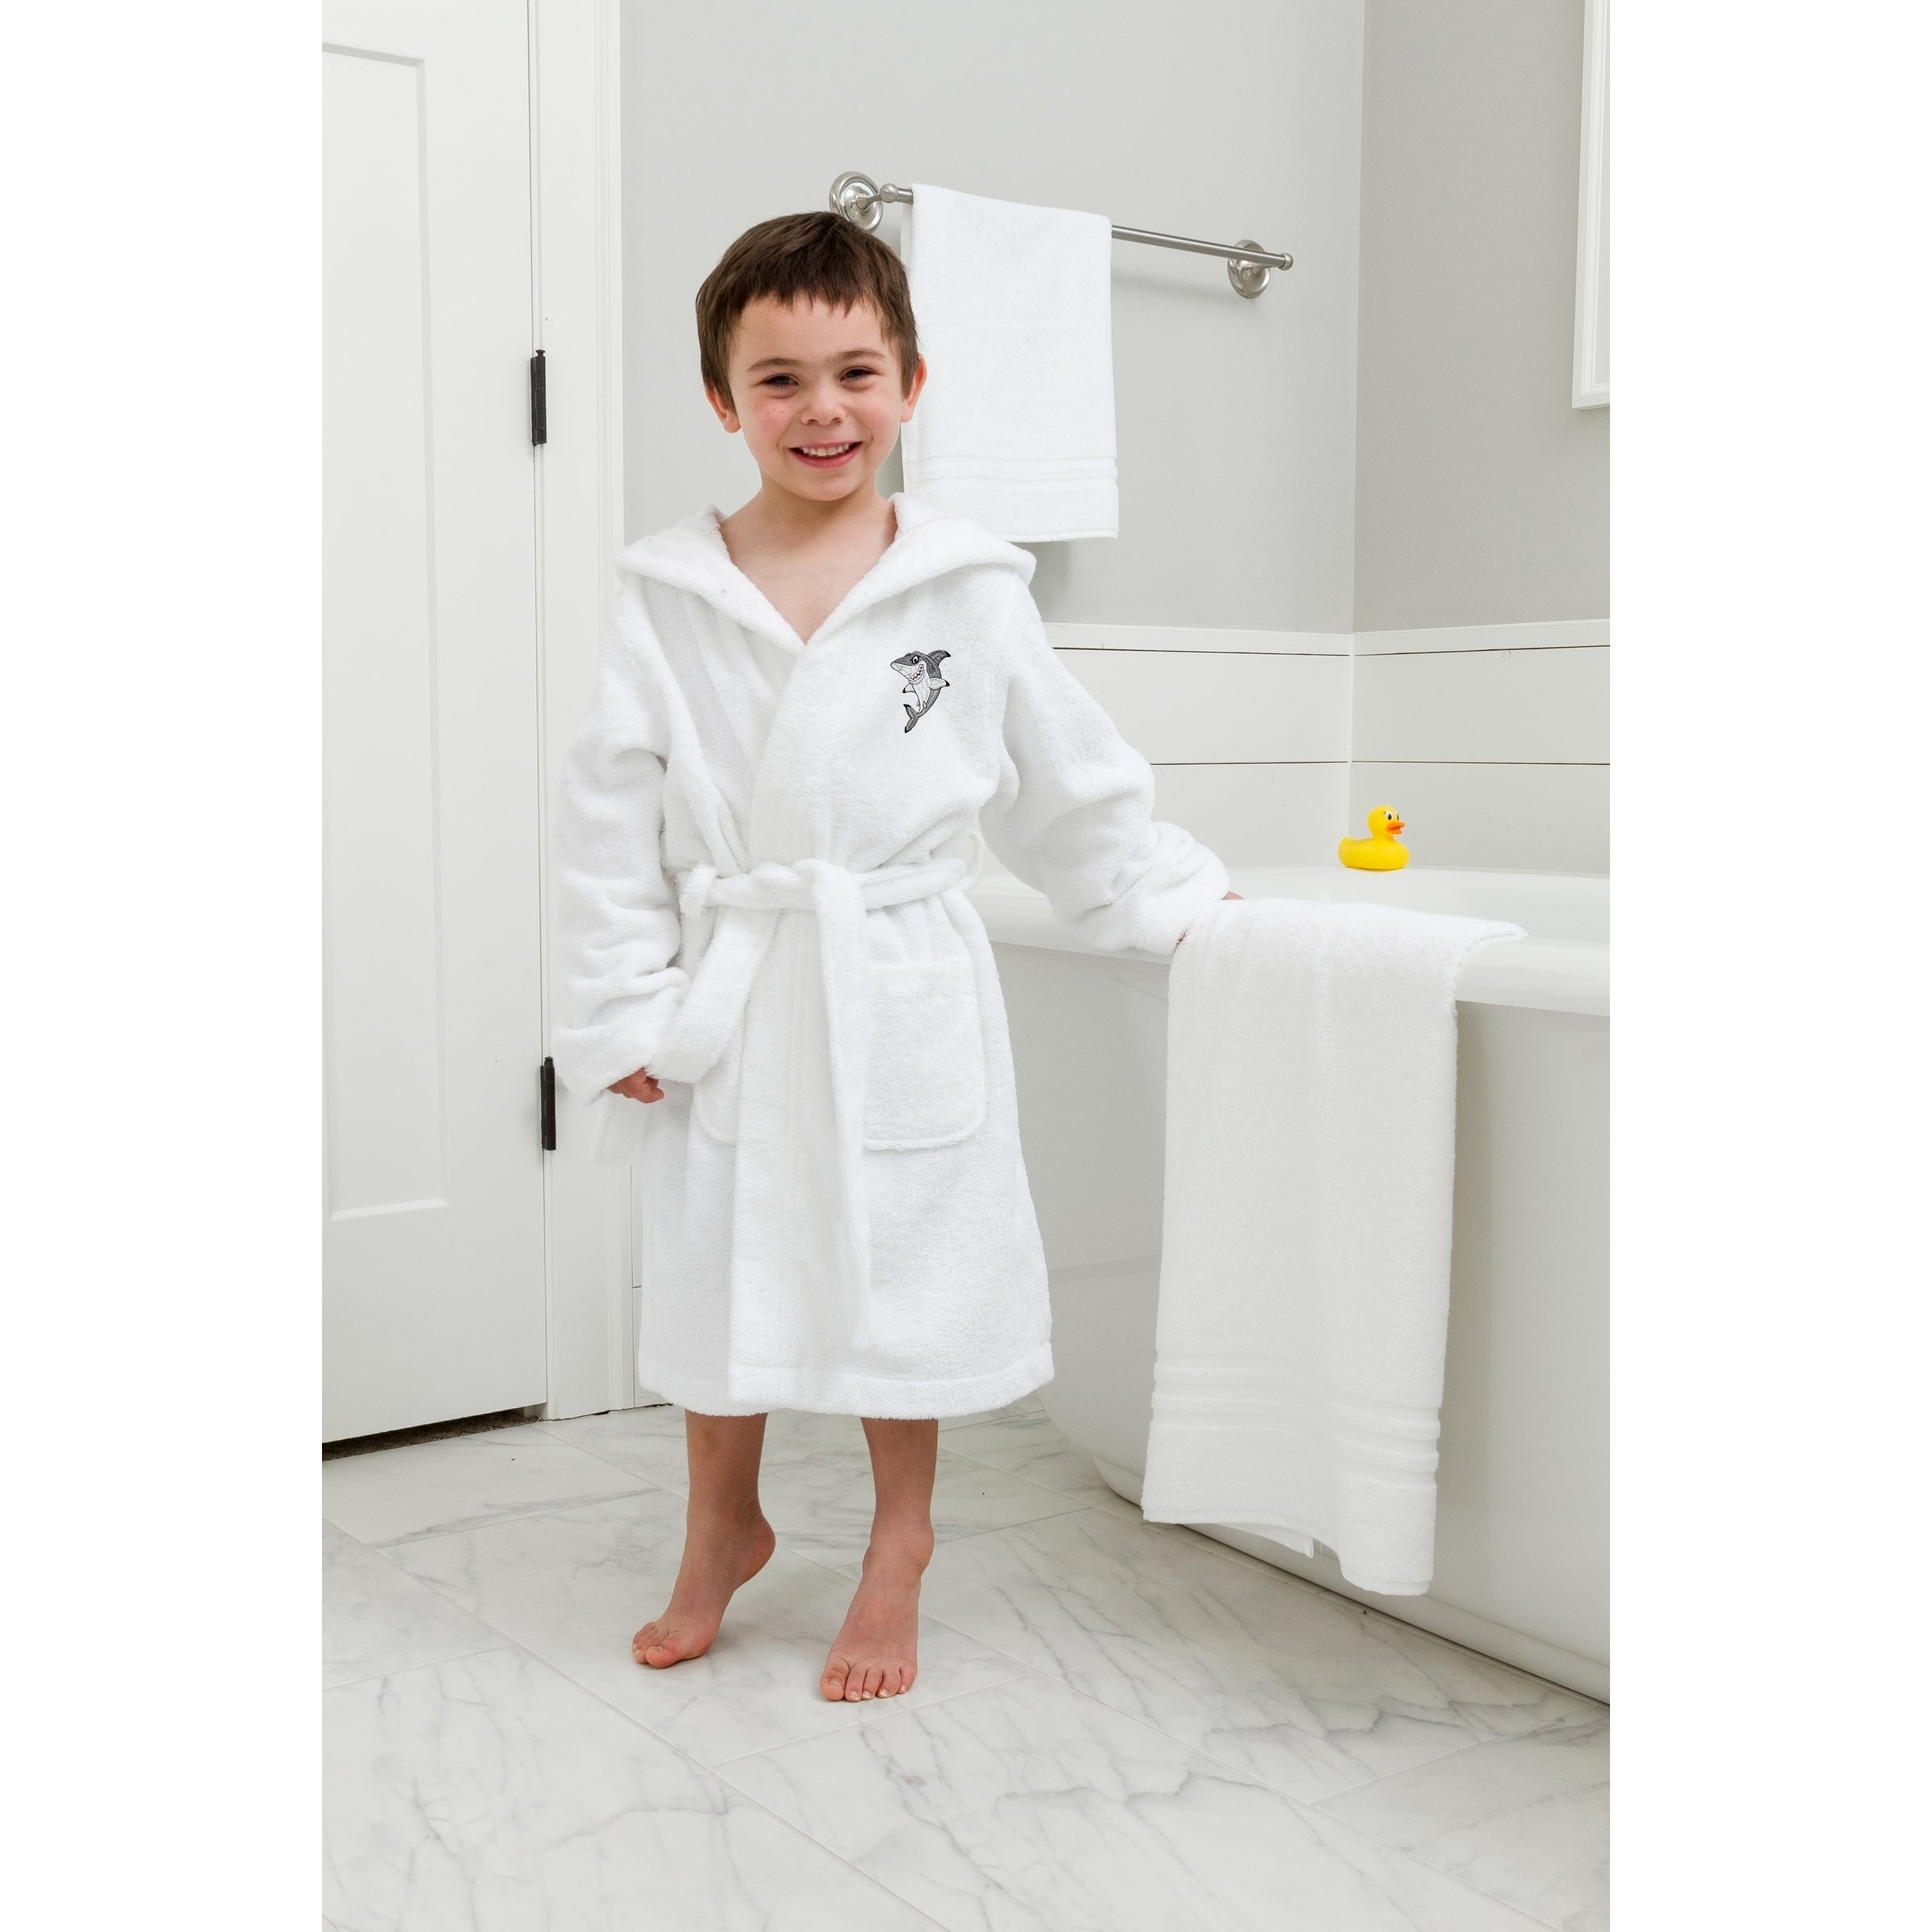 fa9fa72153 Sweet Kids White Turkish Cotton Hooded Terry Bathrobe with Embroidered  Shark Design